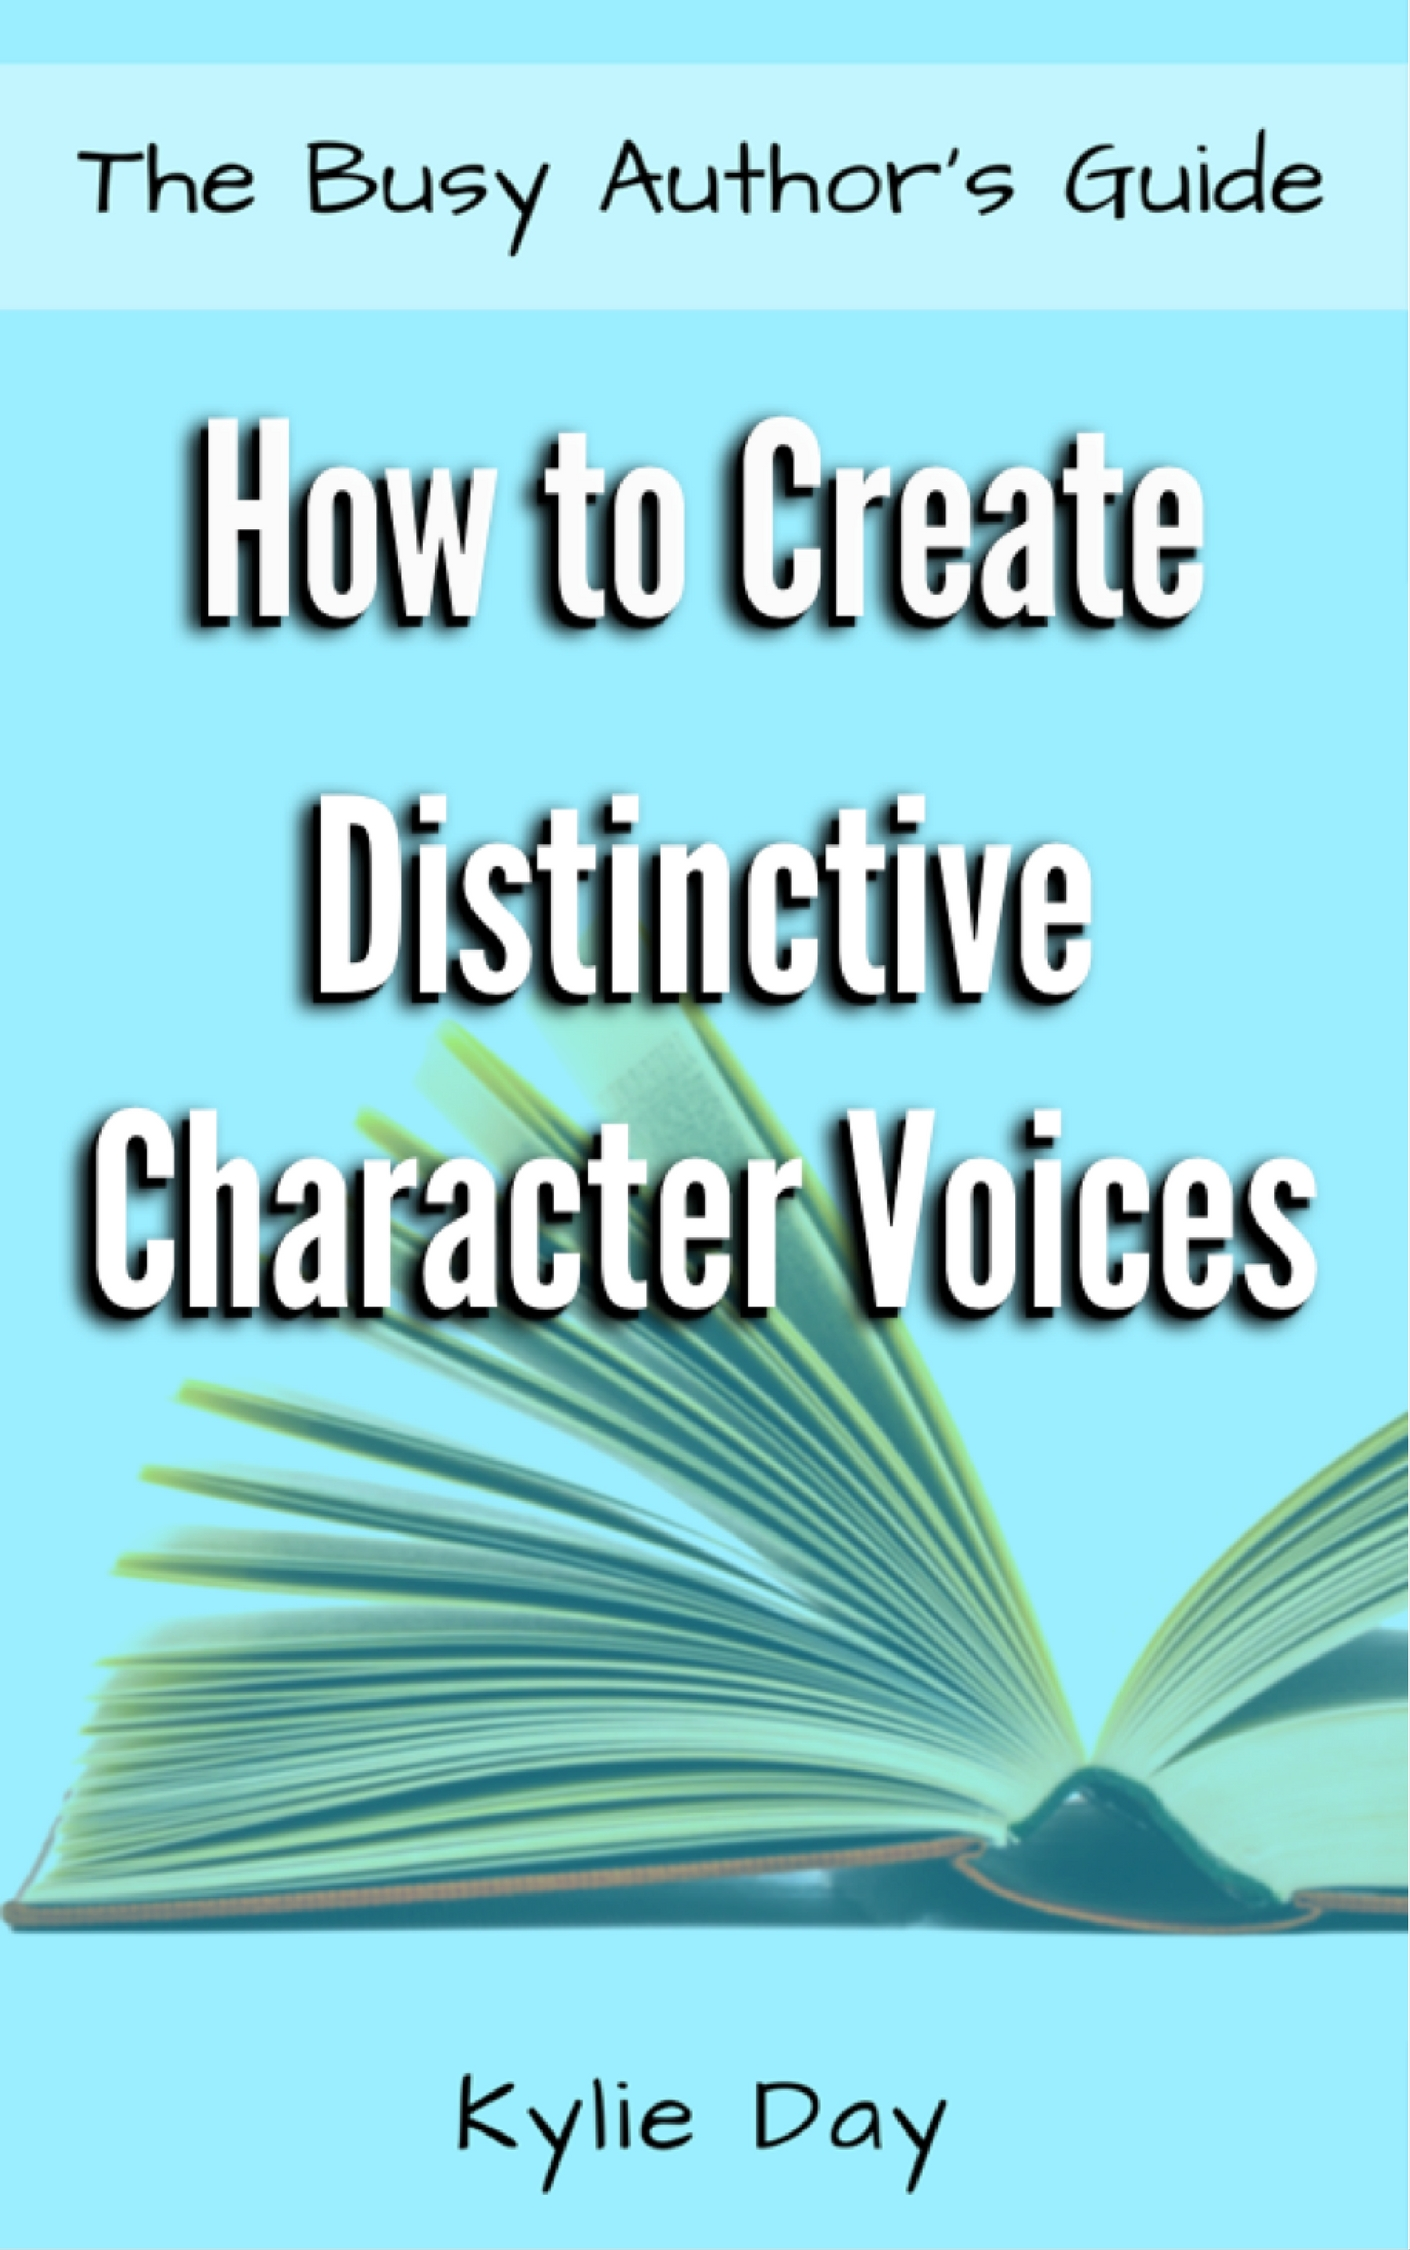 HOW TO CREATE DISTINCTIVE CHARACTER VOICES